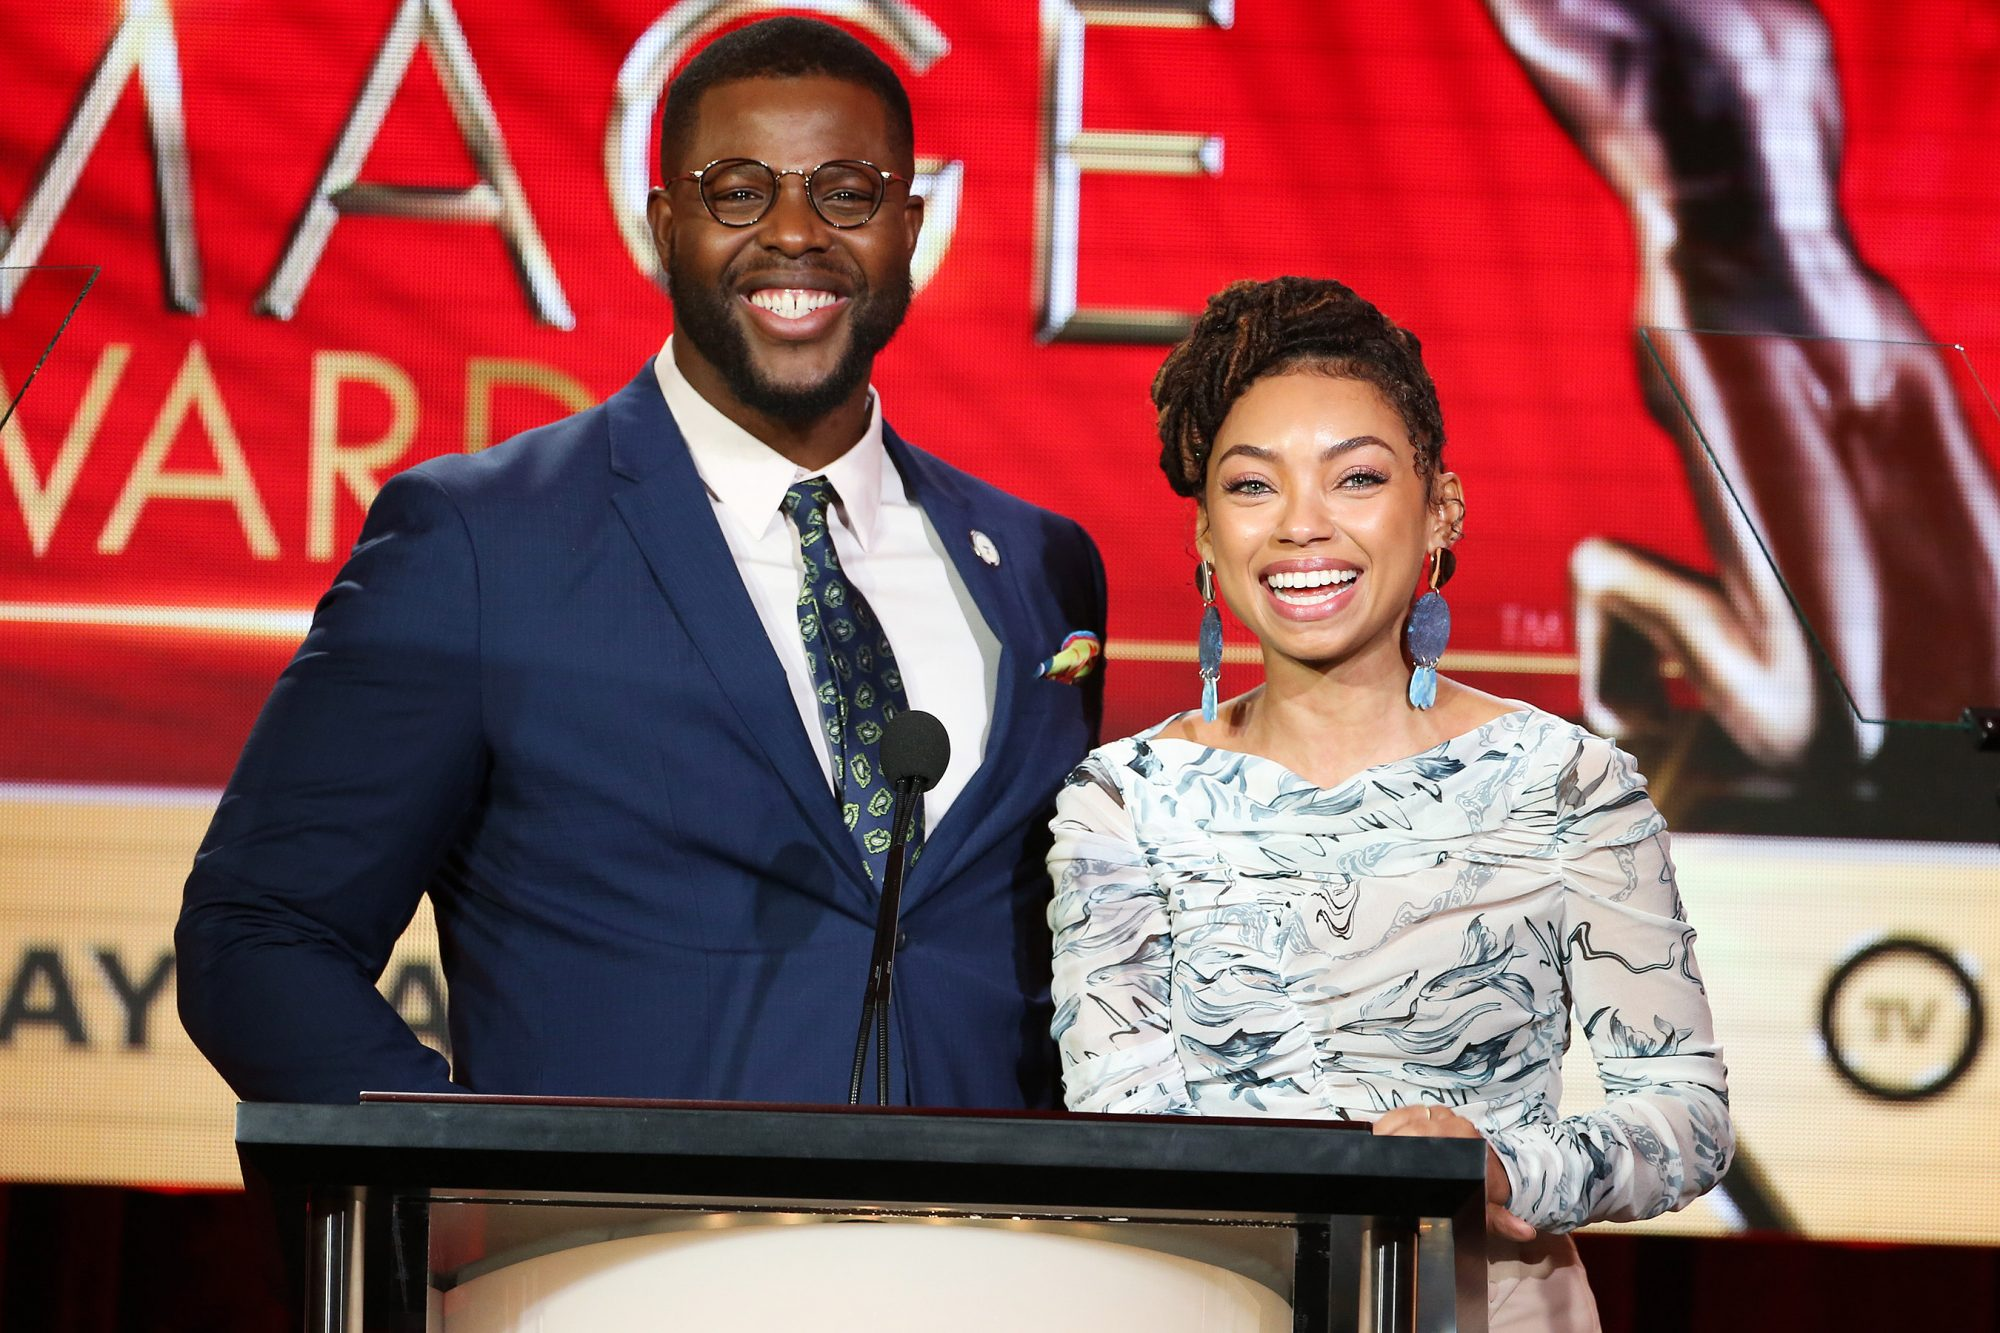 TV One - NAACP Image Awards Nominations, TCA Winter Press Tour, Los Angeles, USA - 13 Feb 2019